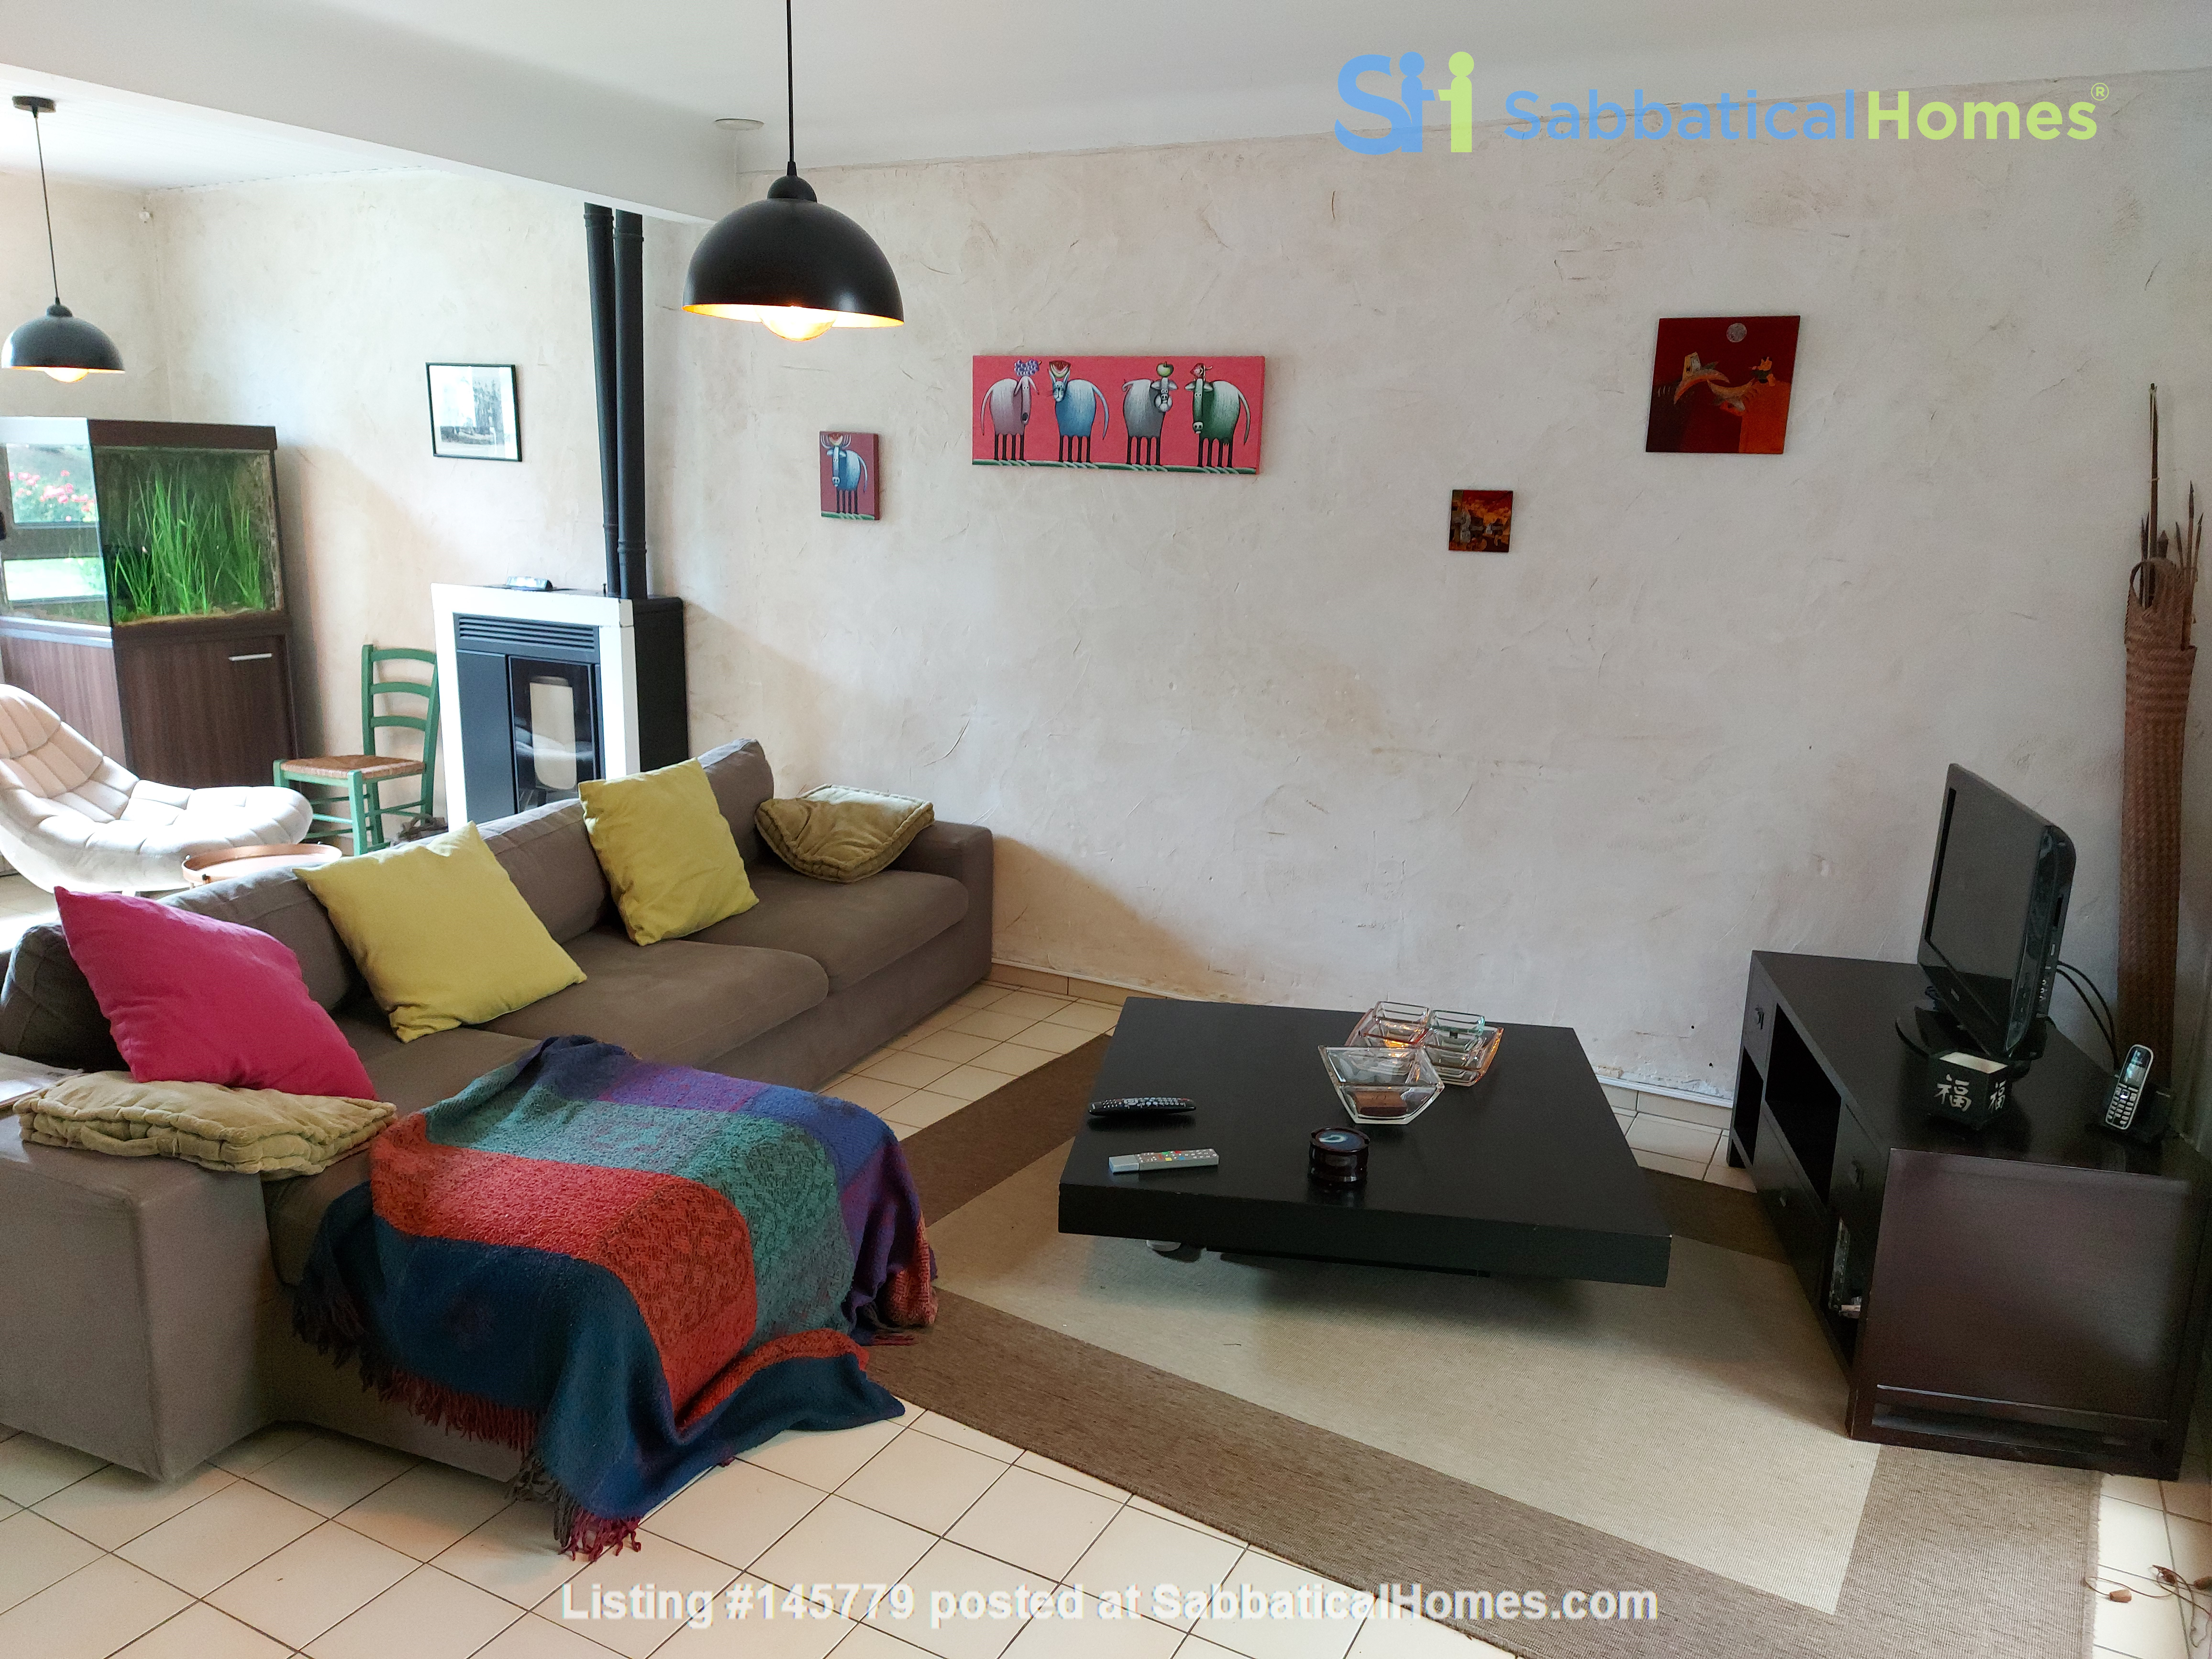 Cosy family house in Nantes between Atlantic coast and cultural activities Home Exchange in Saint-Herblain 6